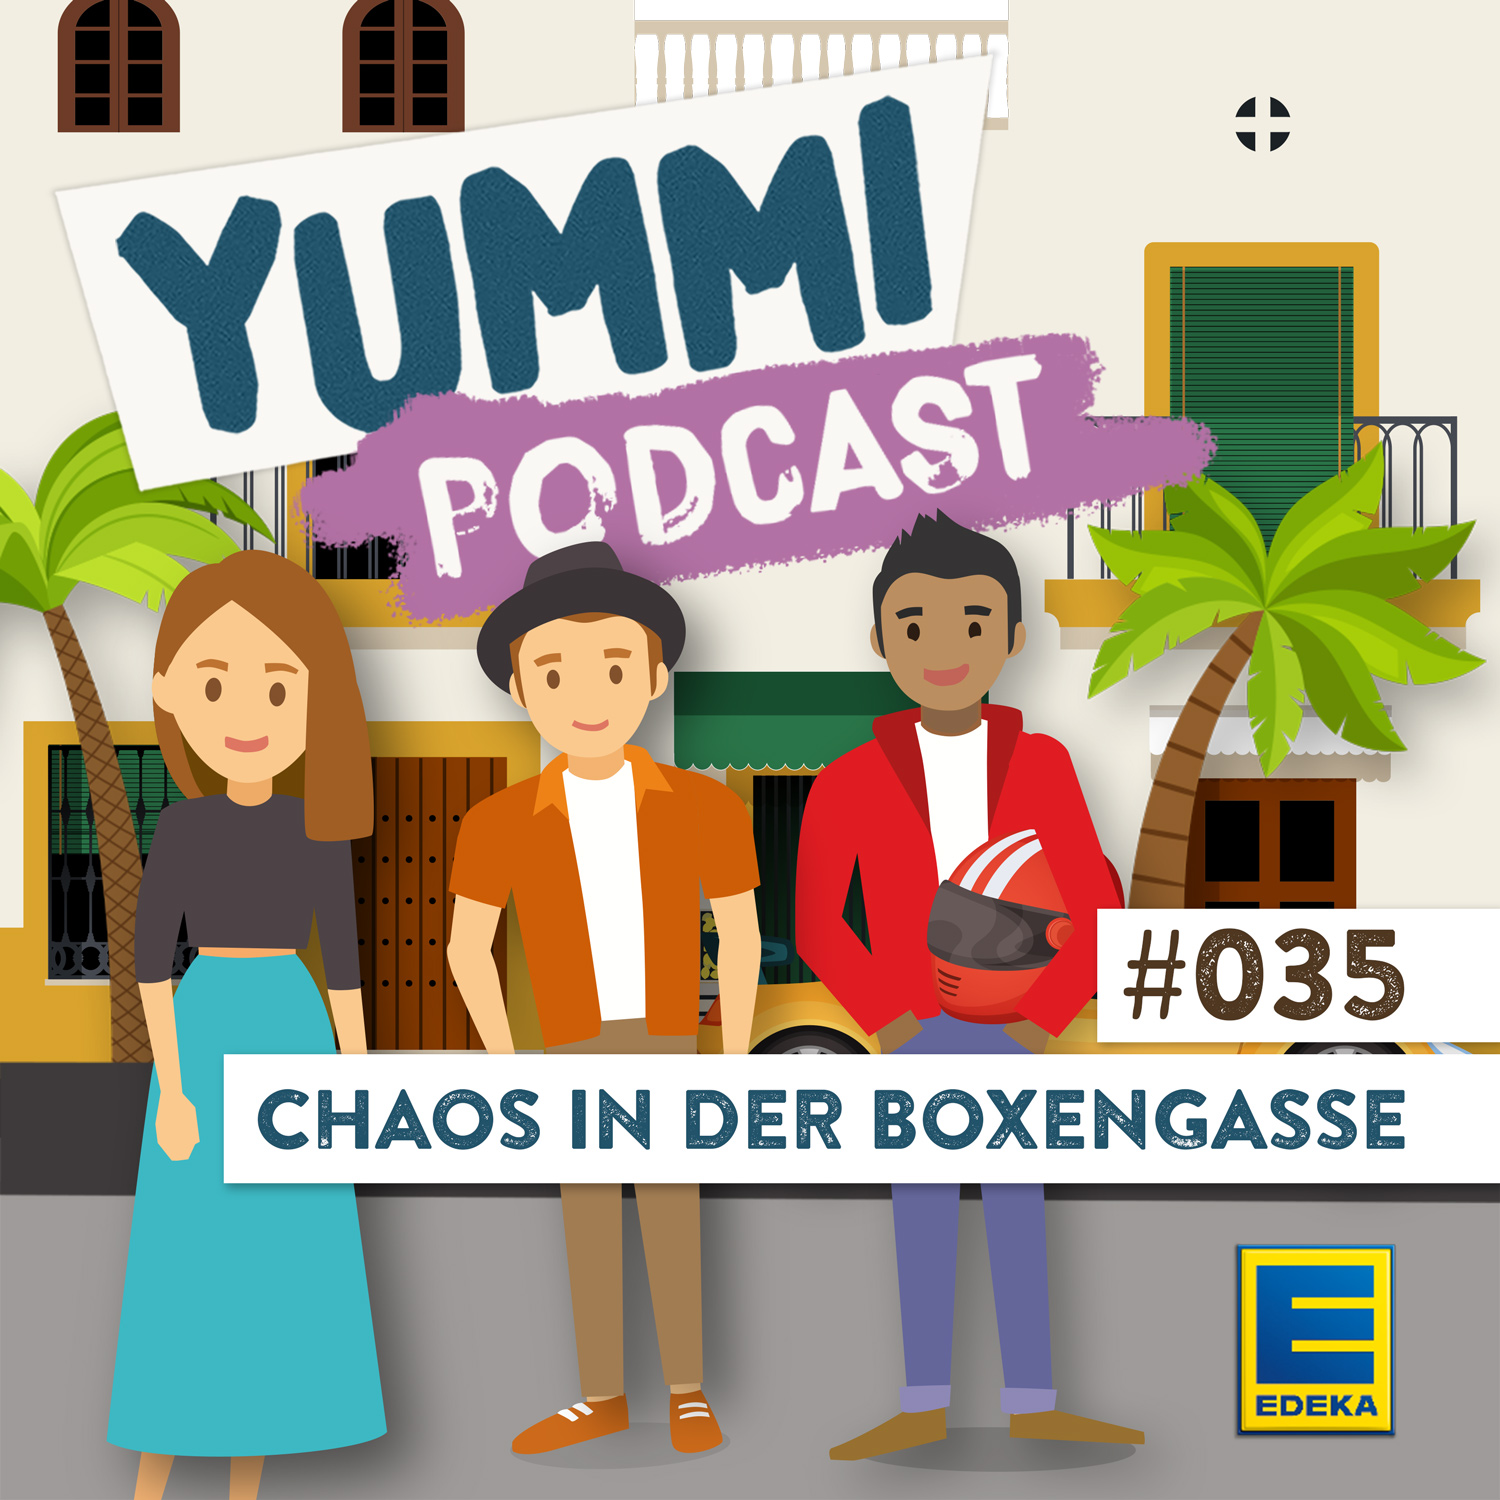 Chaos in der Boxengasse